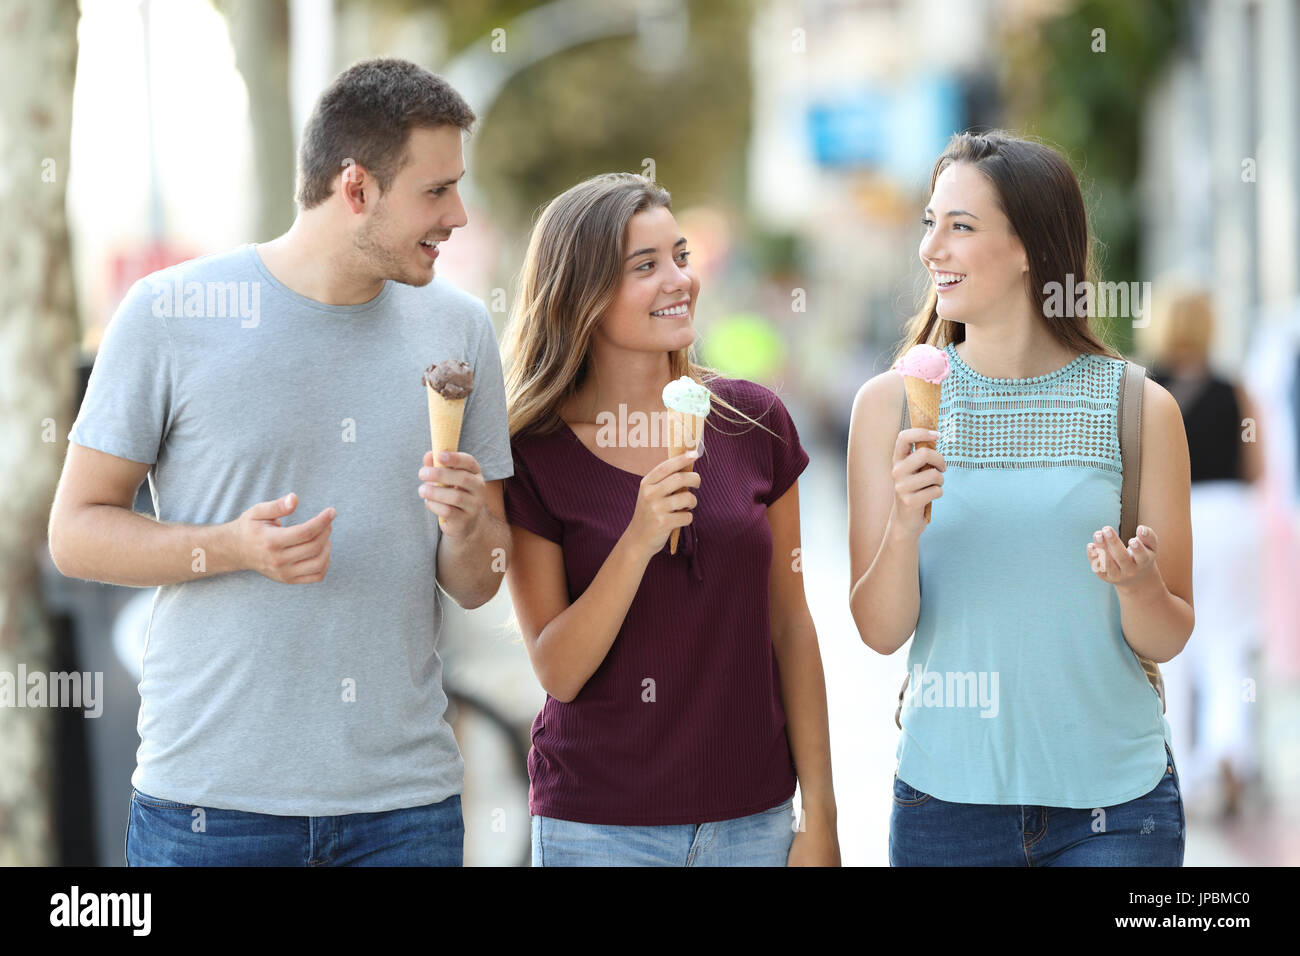 Front view of three happy friends talking and eating ice creams walking in the street Stock Photo